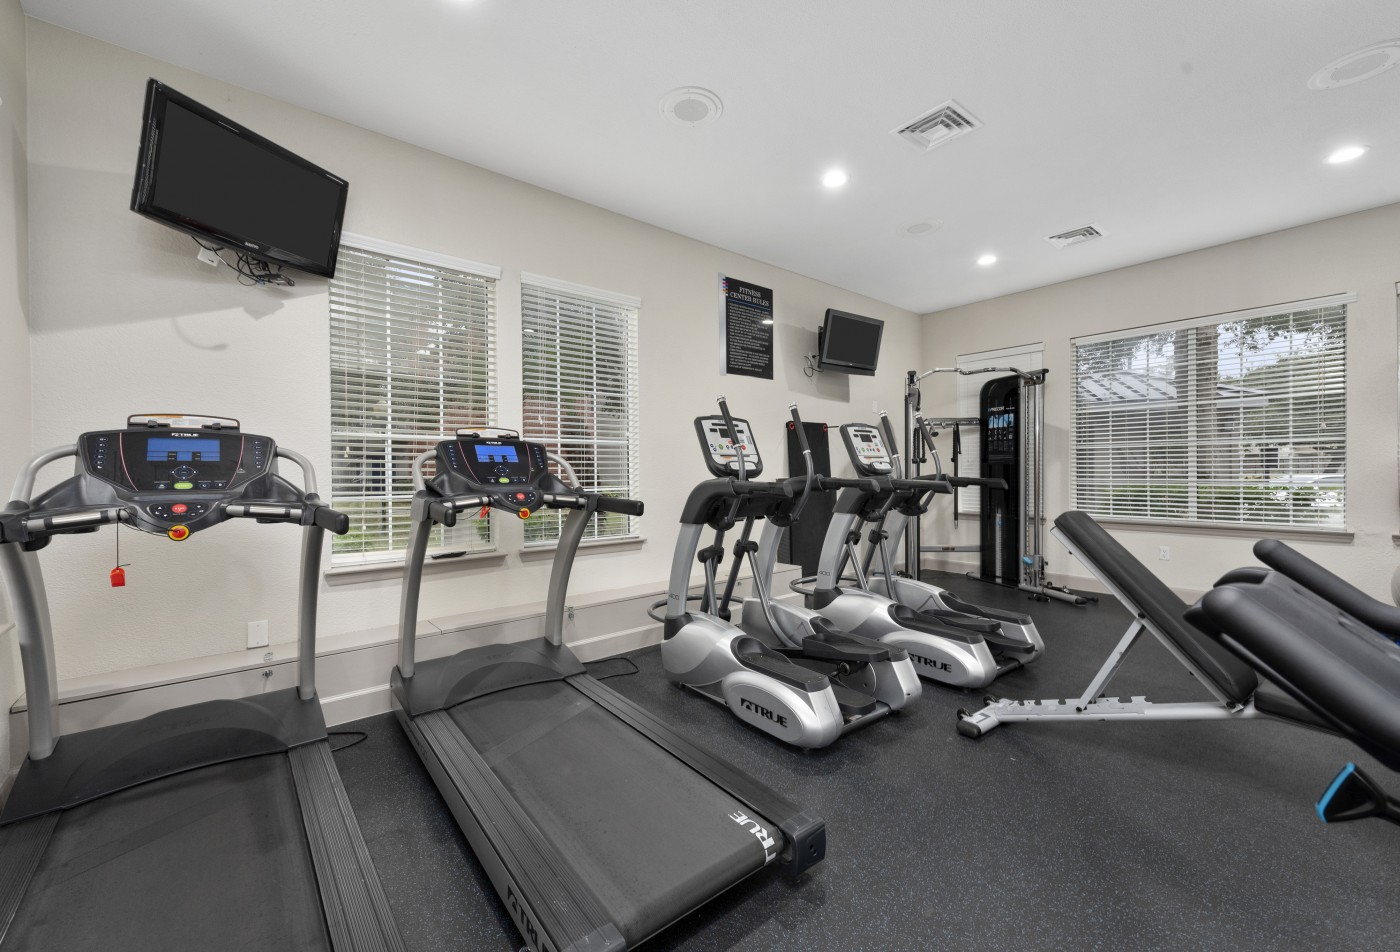 Fitness Center fully equipped